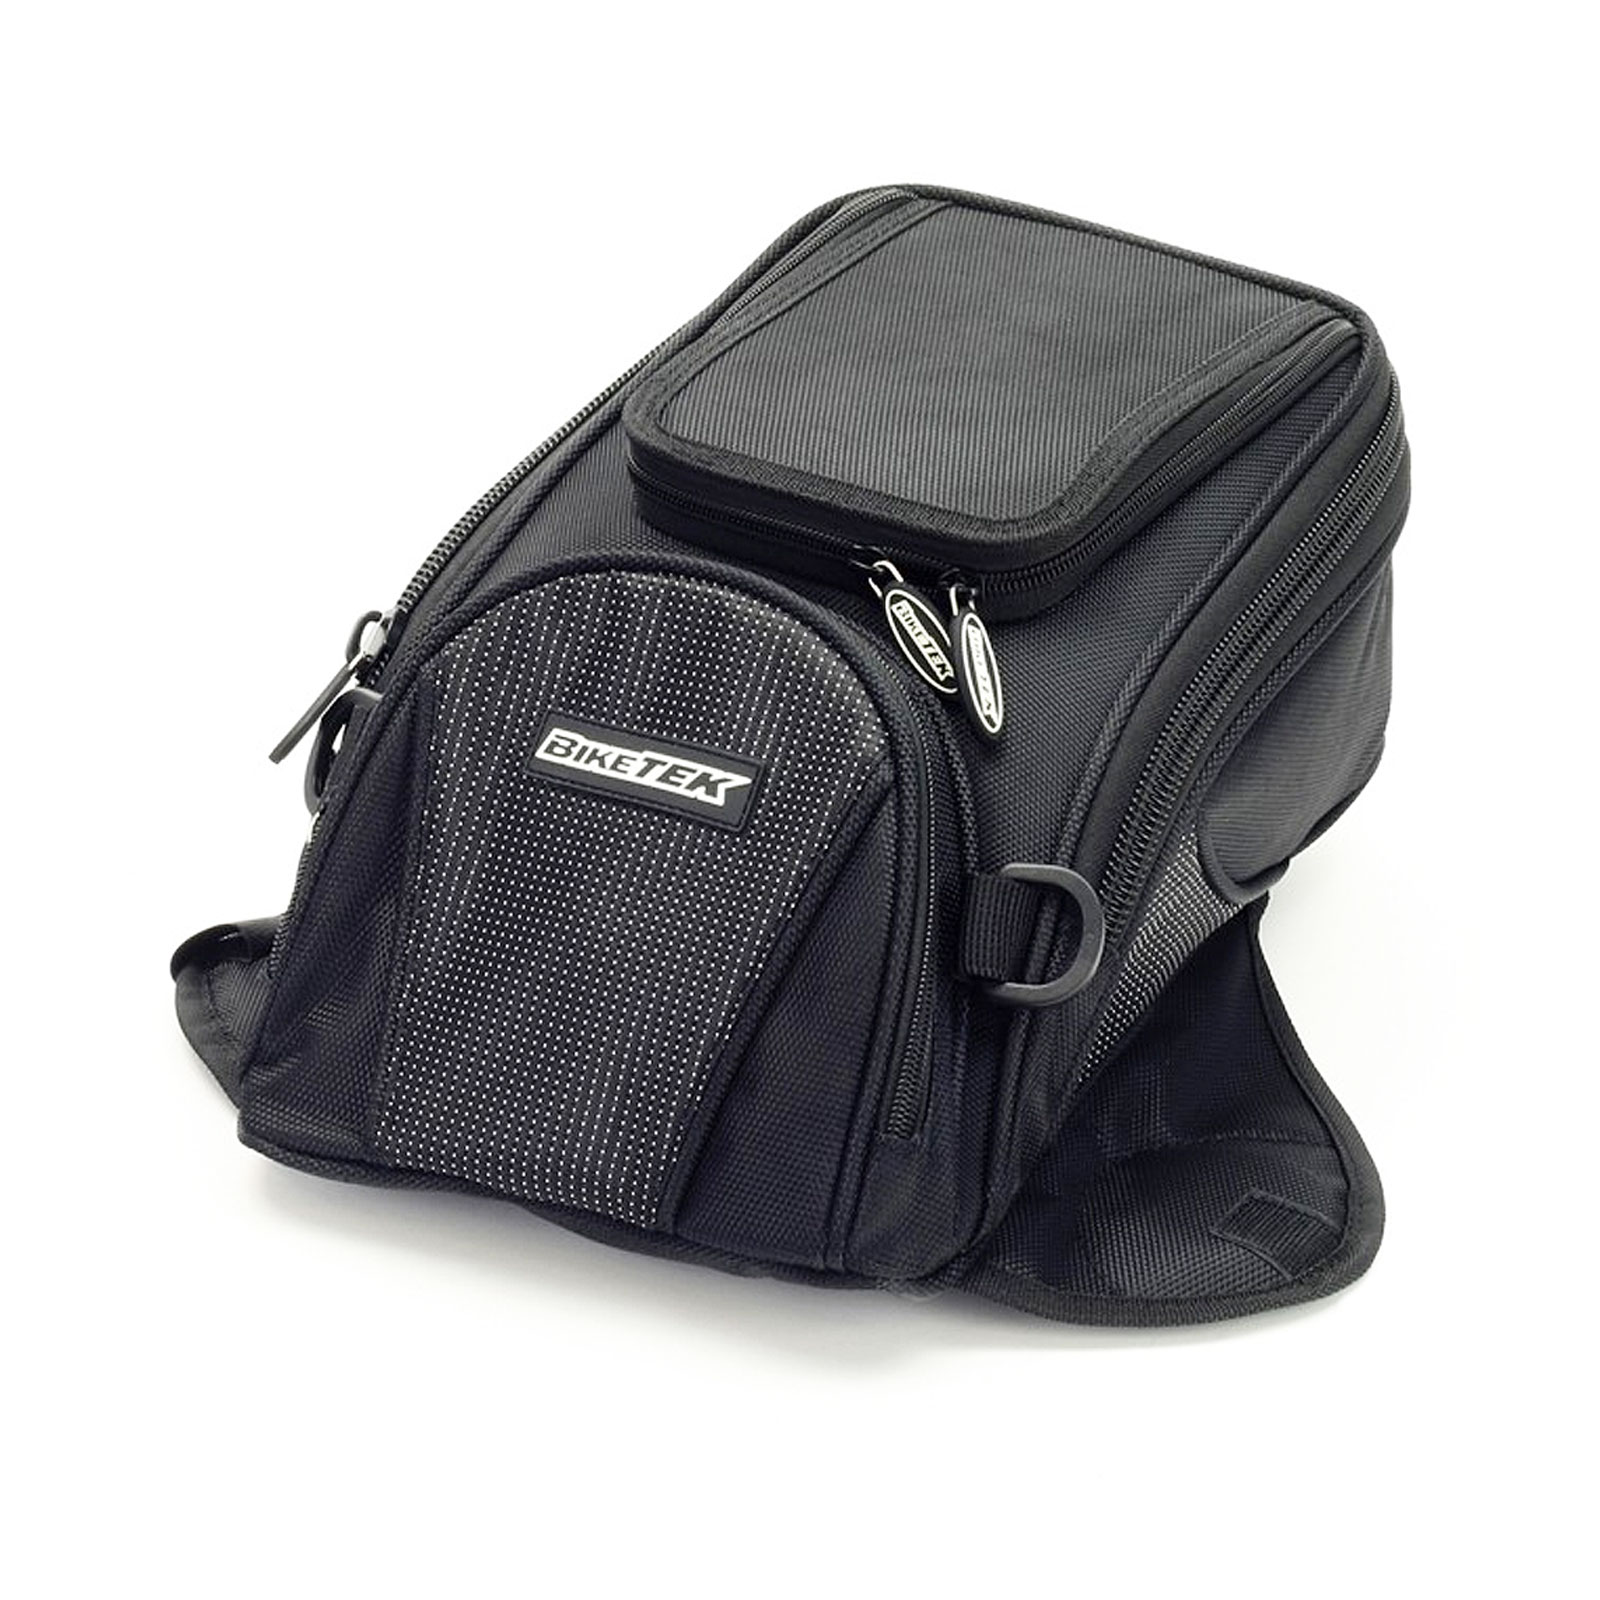 Biketek Motorcycle Mini Magnetic Tank Bag 8 Litre With GPS Pod 8L Black